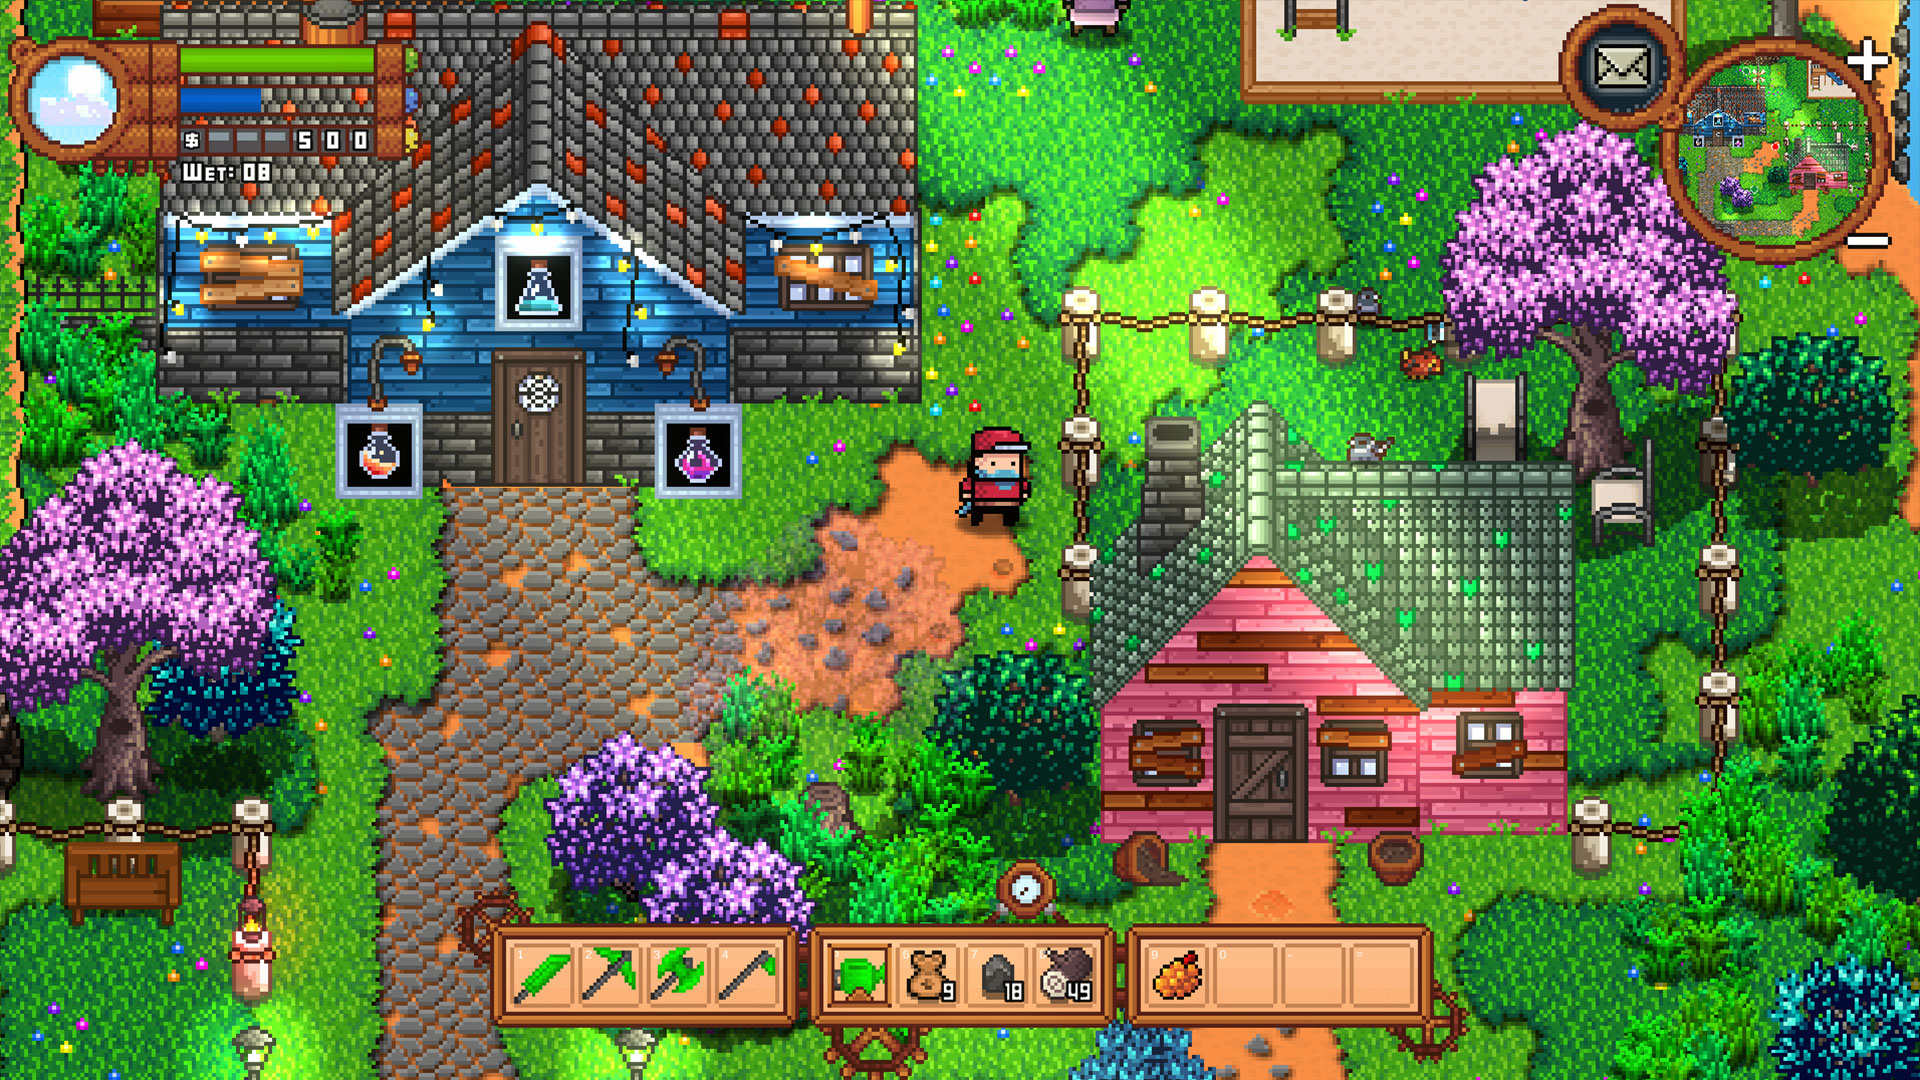 Monster Harvest Gathers The Best Bits Of Stardew Valley And Ooblets Gamesradar This couple also had a daughter, clara, but she died twelve years ago. monster harvest gathers the best bits